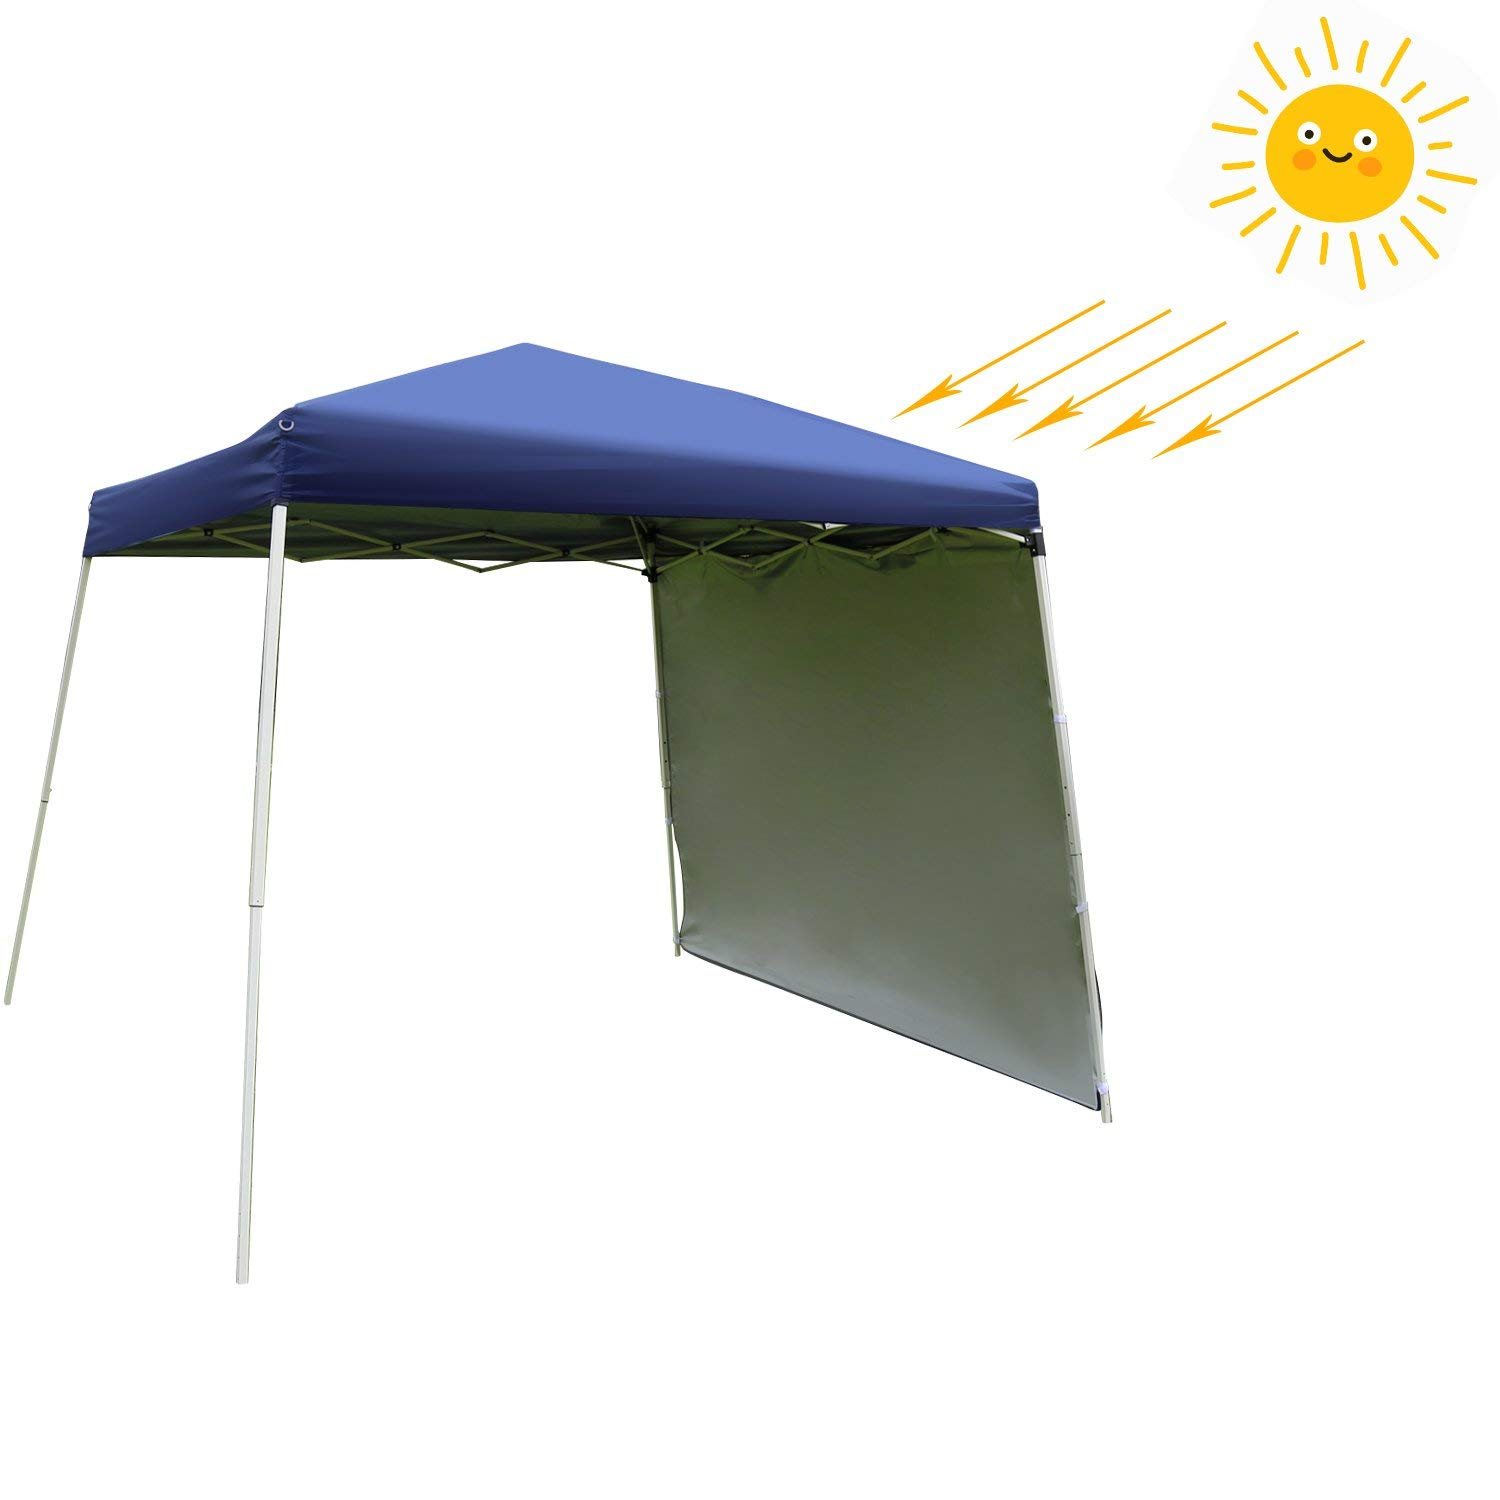 Kinbor Pop Up Canopy Tent with Removable Sidewall 10 x 10 Feet, White - UV Coated, Waterproof Instant Outdoor Party Gazebo Tent